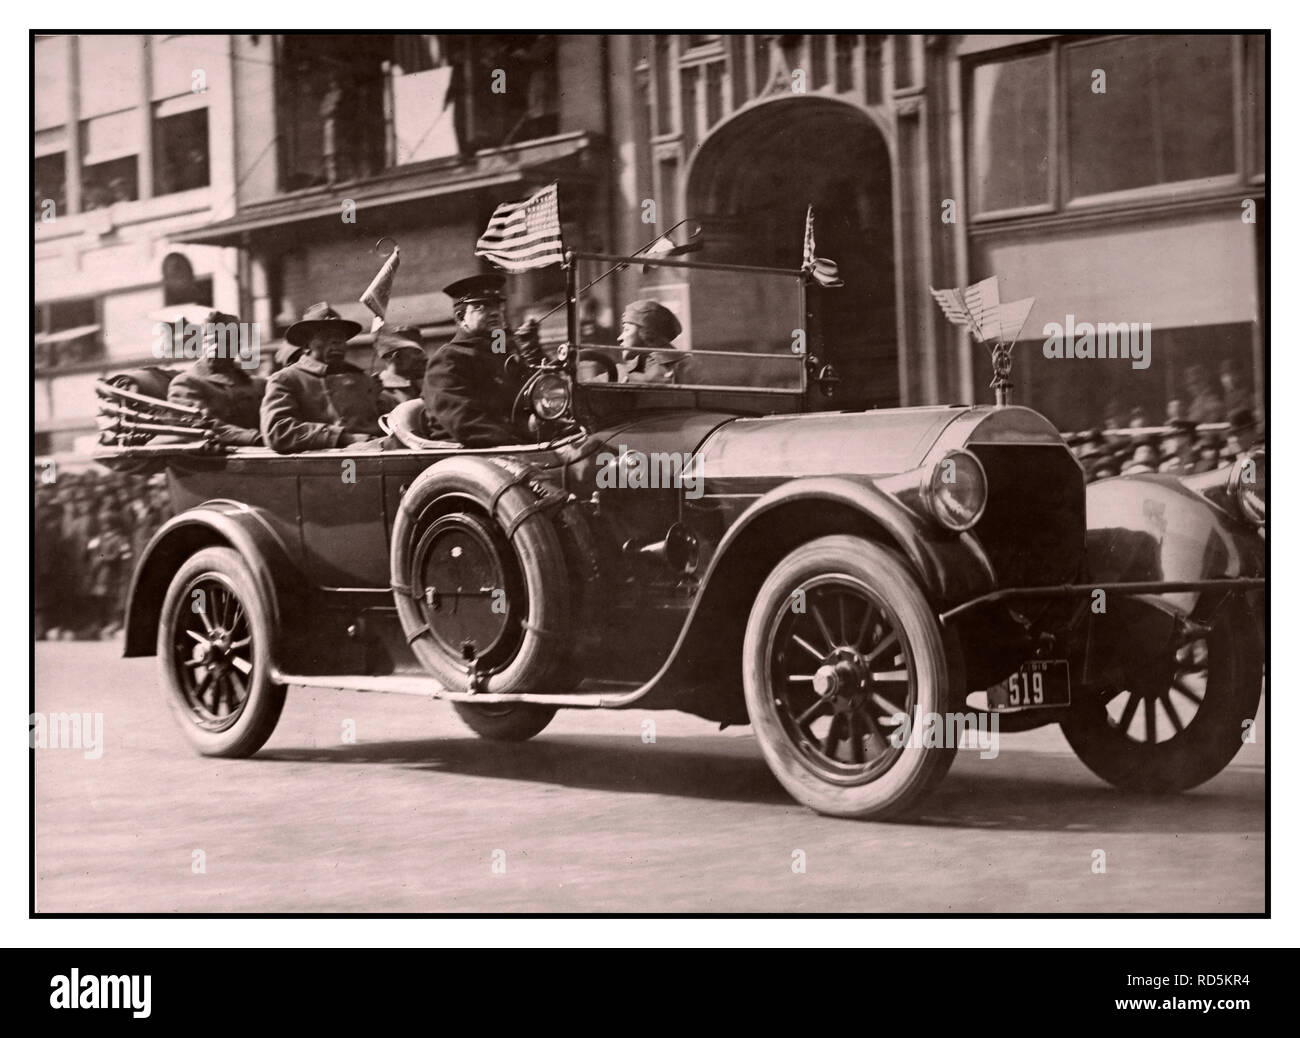 Feb. 17, 1919 Wounded soldiers of the 369th ride in their victory parade. Harlem Hell Fighters of the 369th 1918-1919 The 369th Infantry Regiment was the first African-American regiment to fight in World War I. First constituted on June 2, 1913 as the 15th New York Infantry Regiment of the New York Army National Guard, it was renamed to the 369th in 1918. Harlem Hellfighters The black heroes of the 369th… - Stock Image